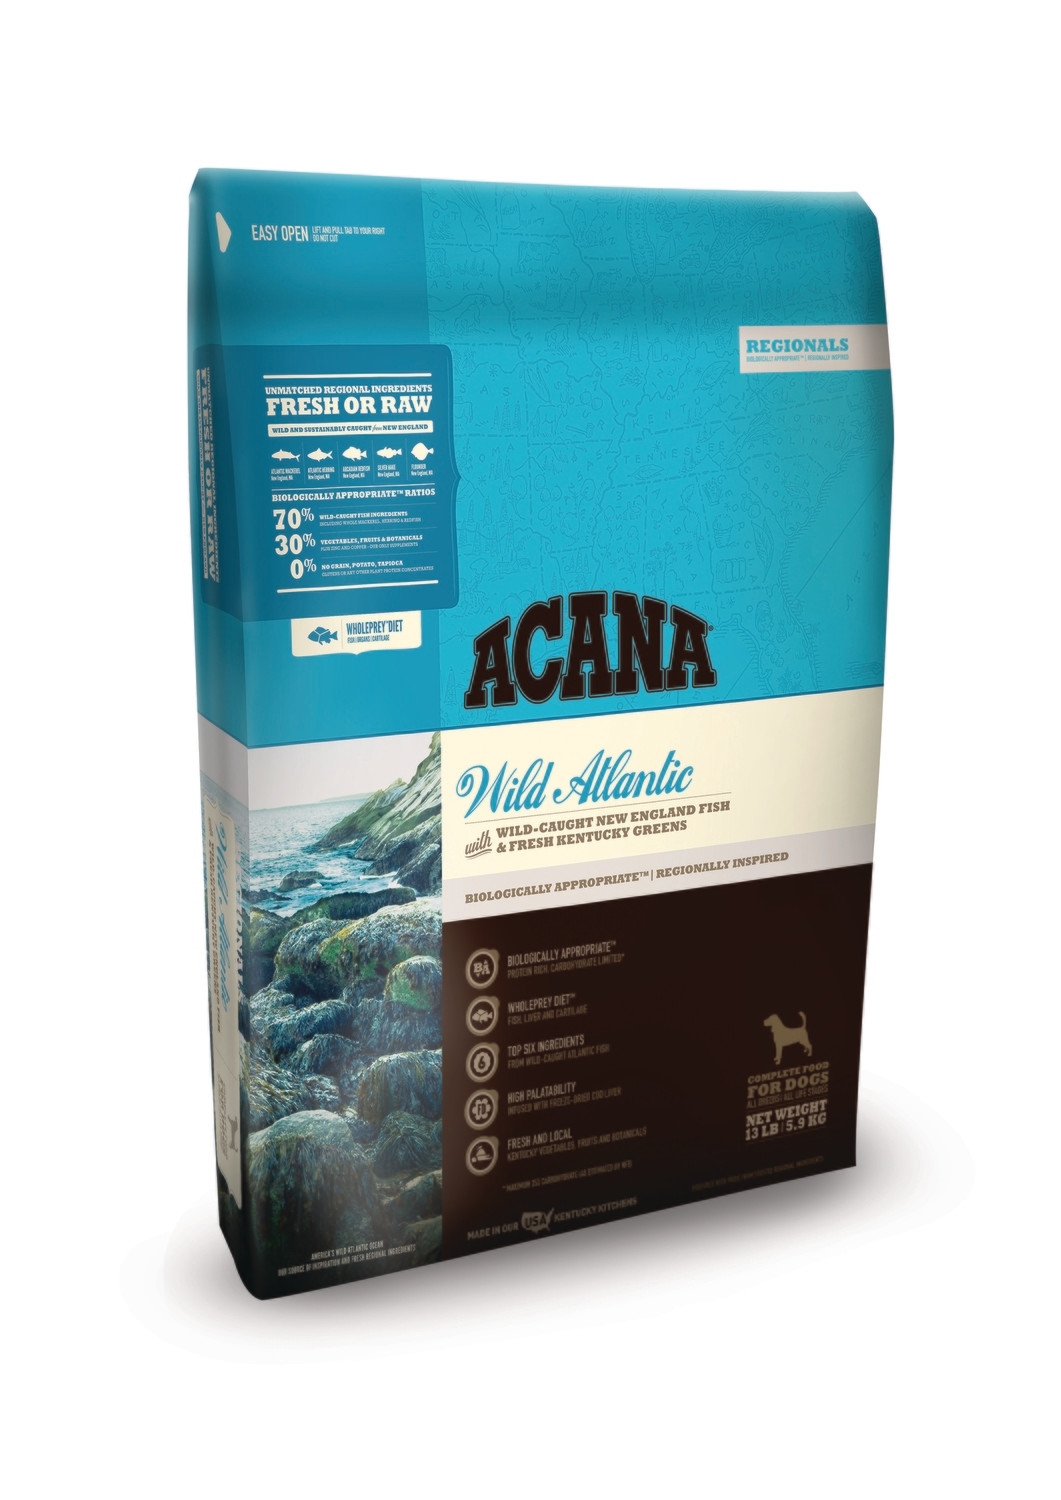 Acana Regionals Wild Atlantic 25lb